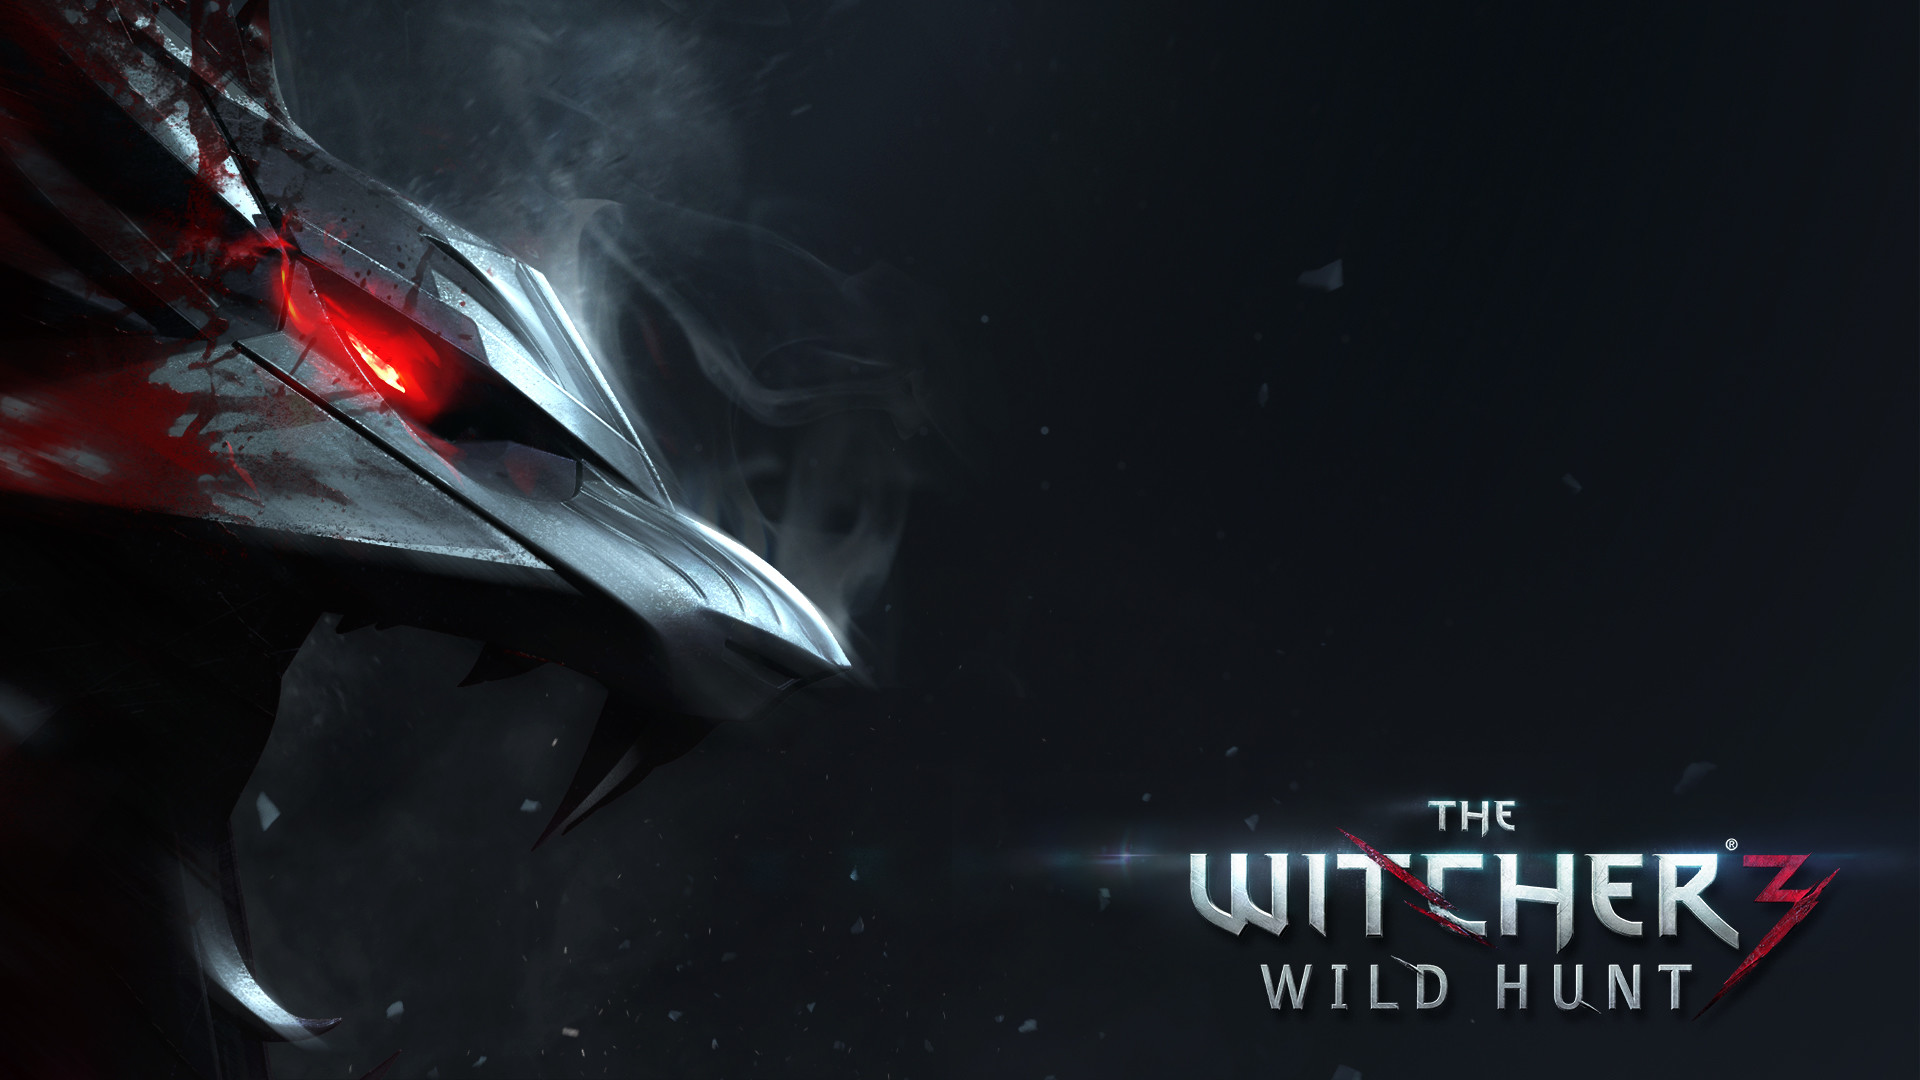 Wallpaper the witcher 3 wild hunt, the witcher, cd projekt